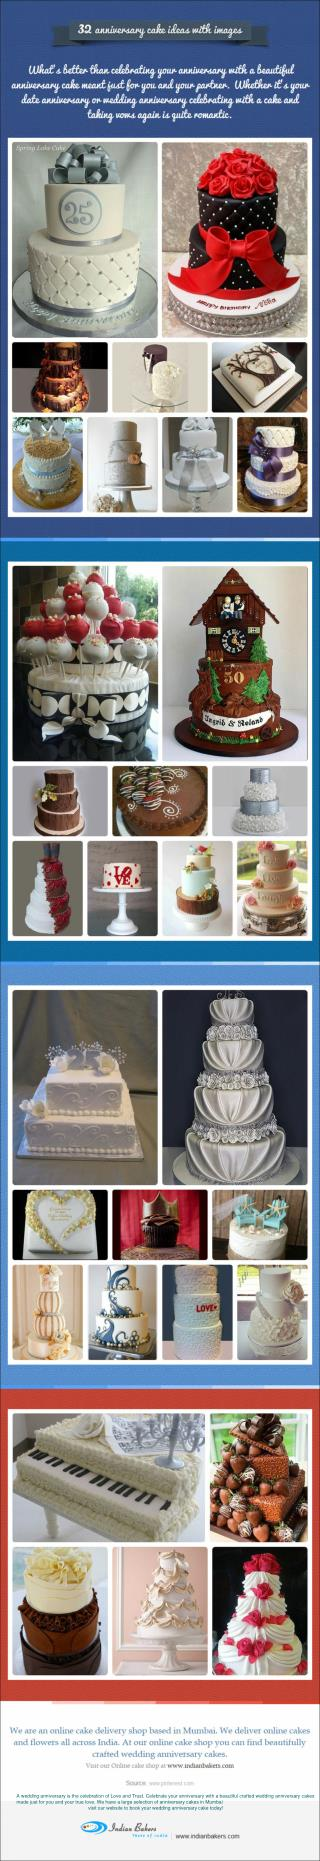 32 Anniversary Cake Ideas with Images